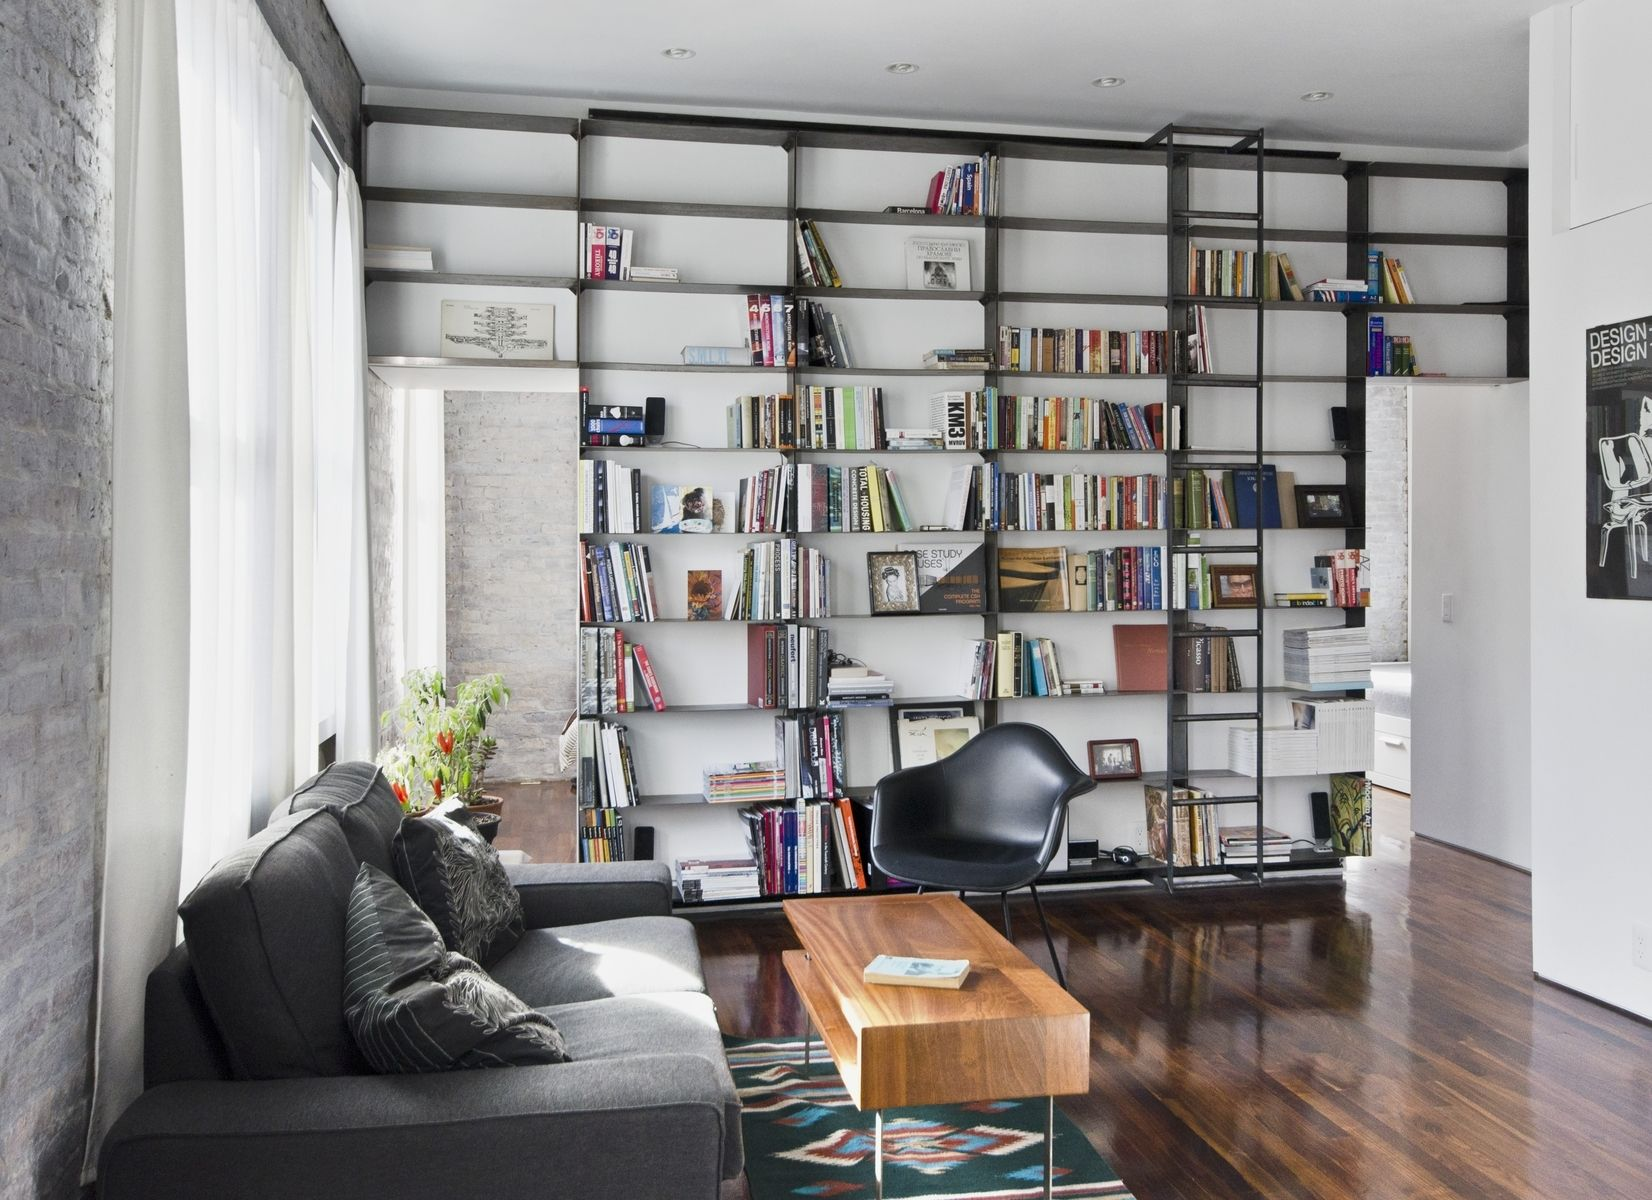 Custom Made Minimal Blackened Steel Bookshelves With Rolling Library Ladder